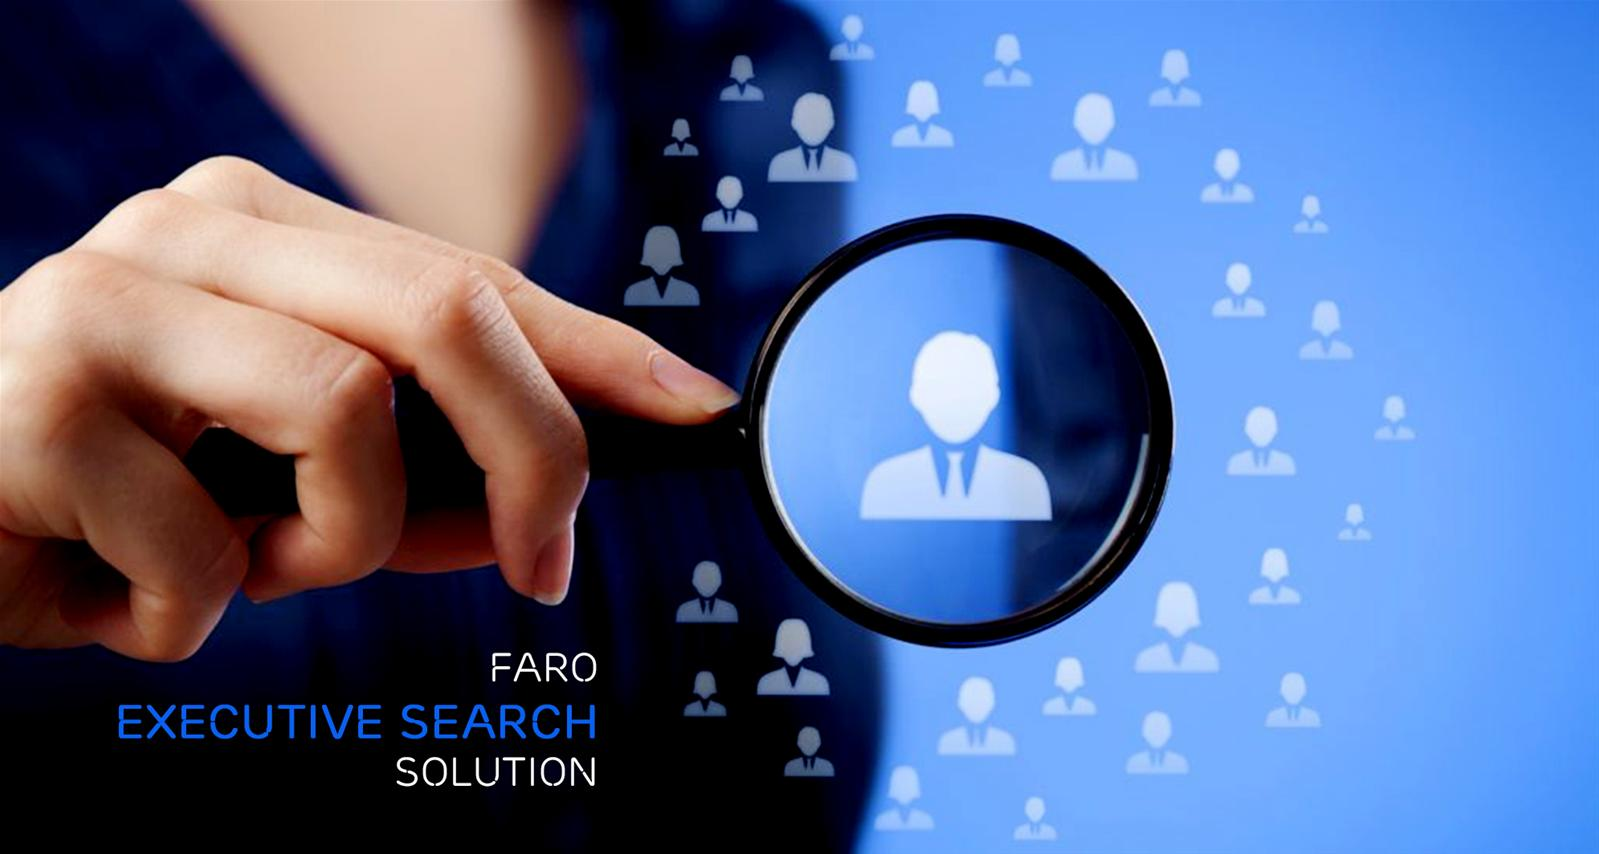 Executive Search solution has been performed as an excellent assistant for the business